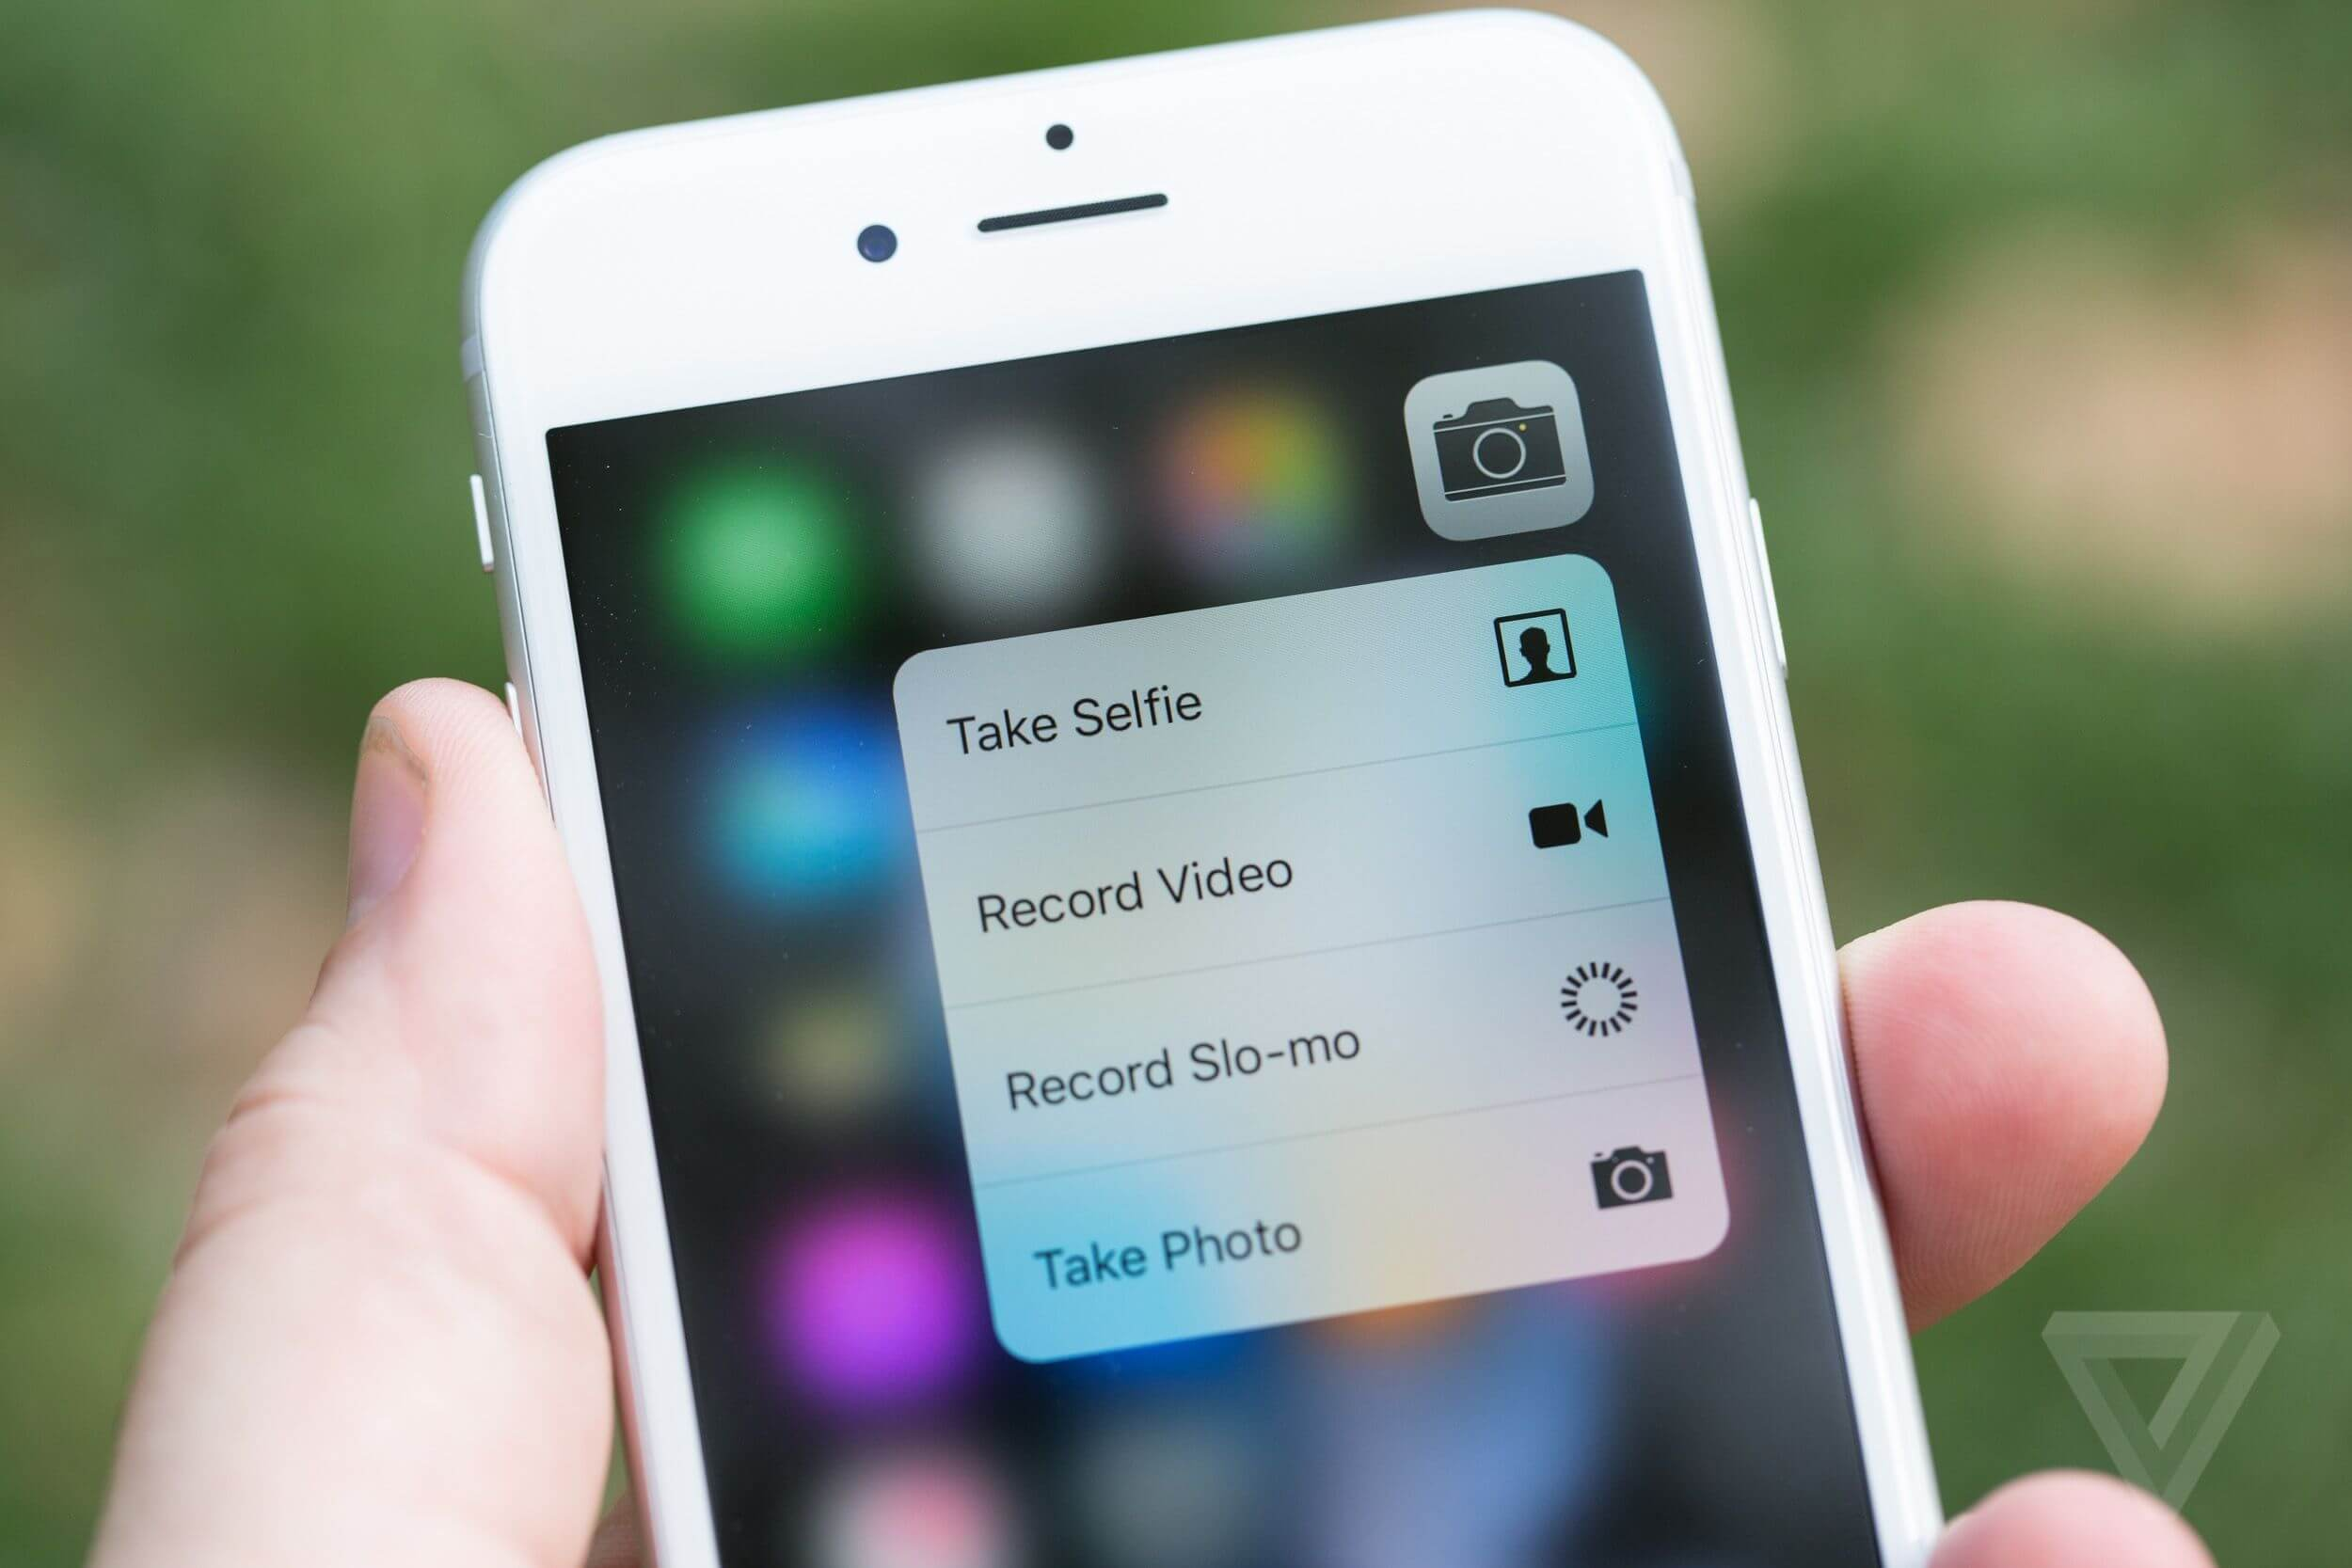 3D Touch in action on iPhone 6s